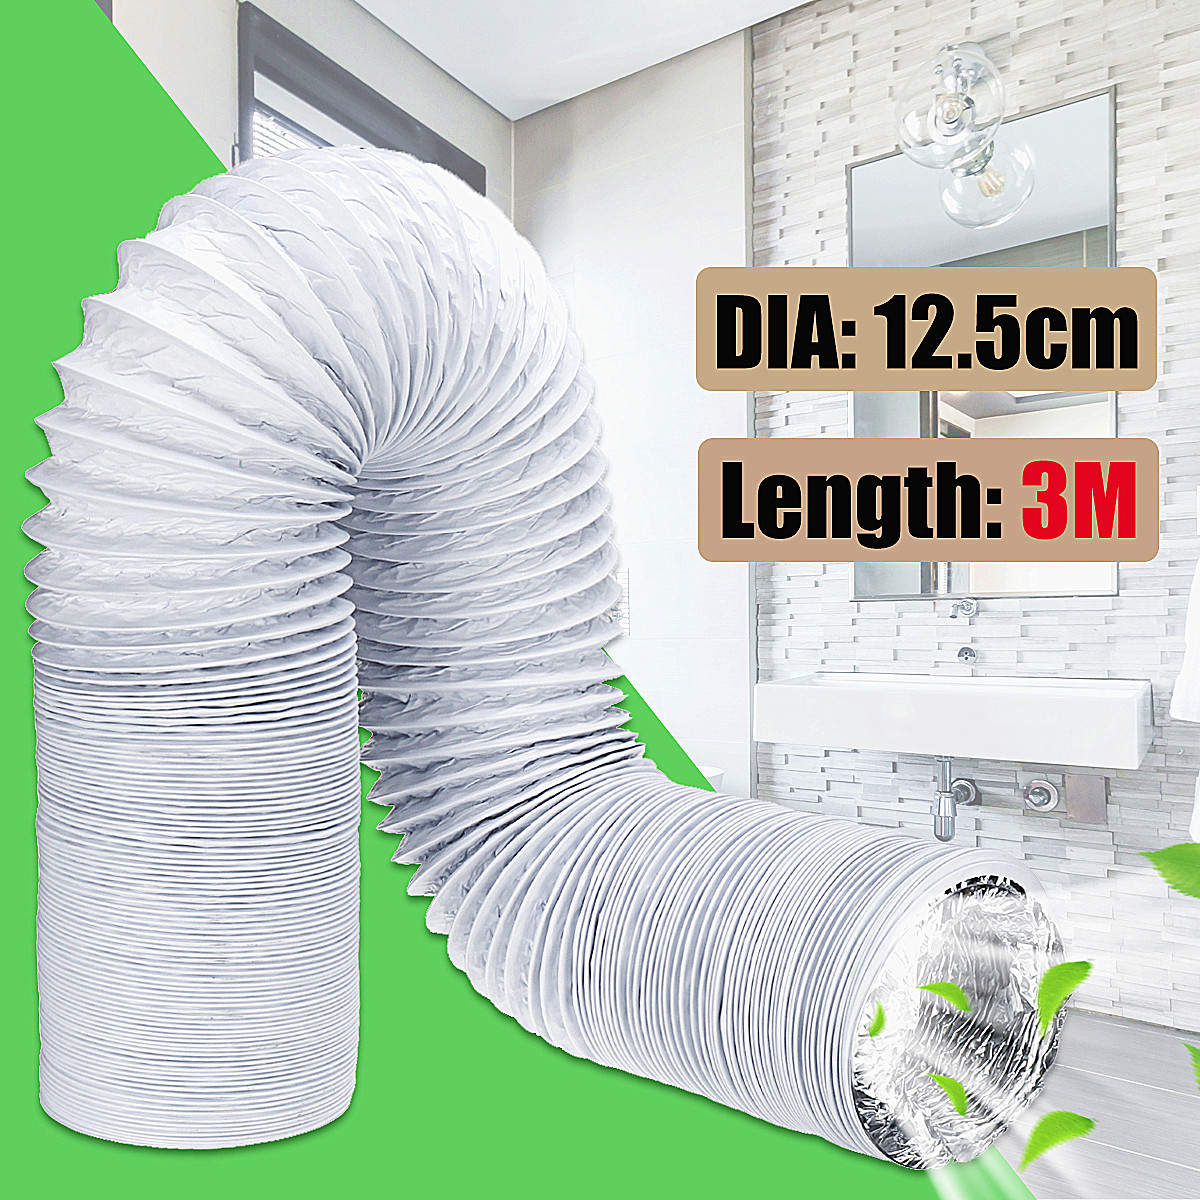 3M 5Inch Exhaust Hose PVC Flexible Ducting Air Conditioner Exhaust Hose  Replacement Hose Extend Vent